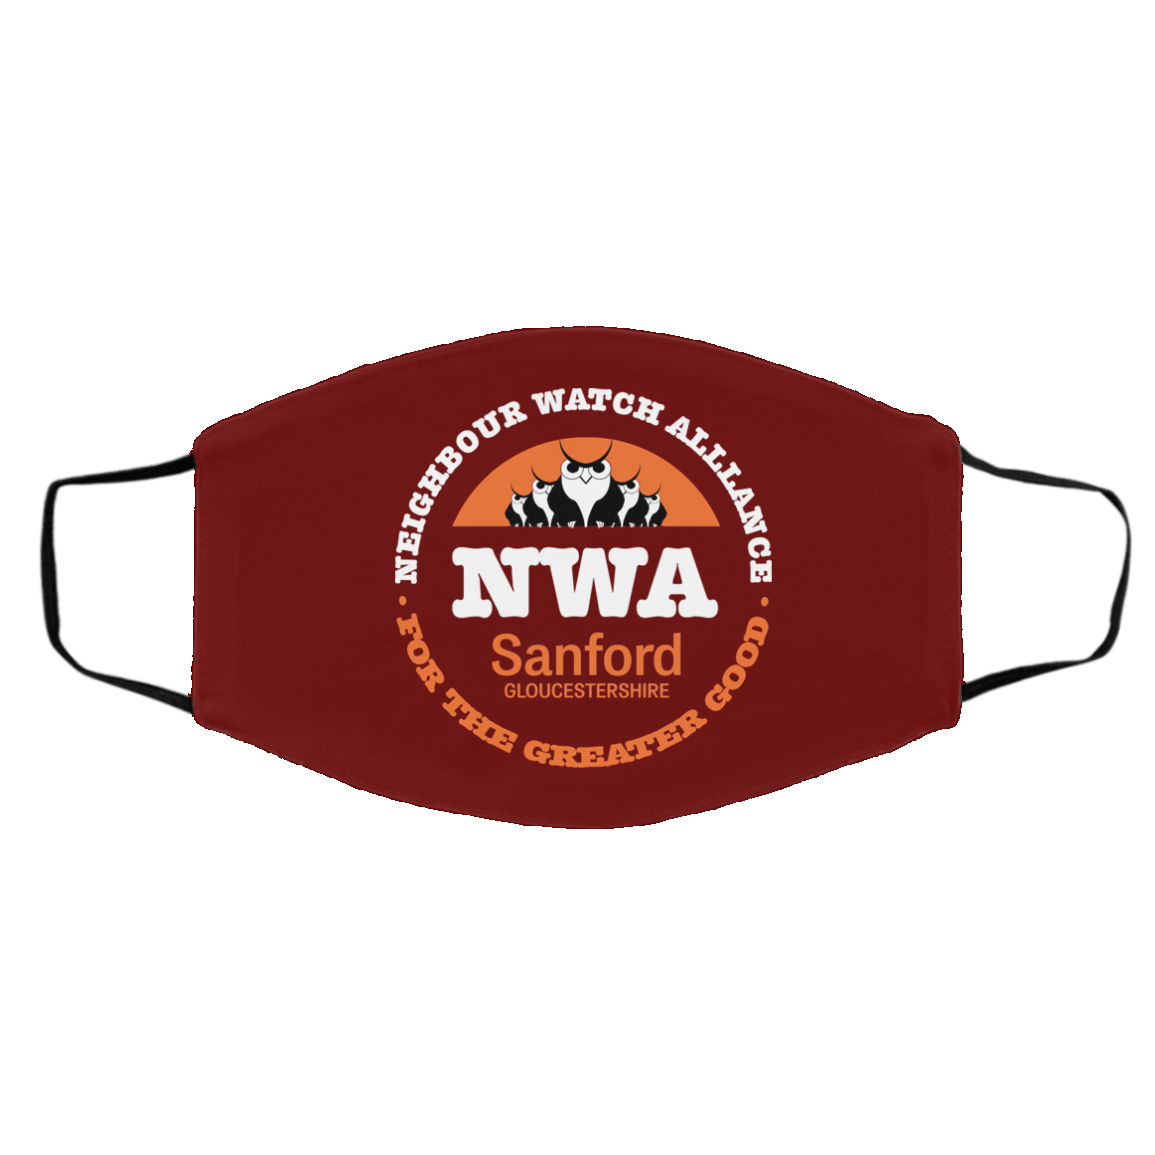 NWA Neighbourhood Watch Alllance For The Greater Good Face Mask 1274-13181-91587536-59069 - Tee Ript